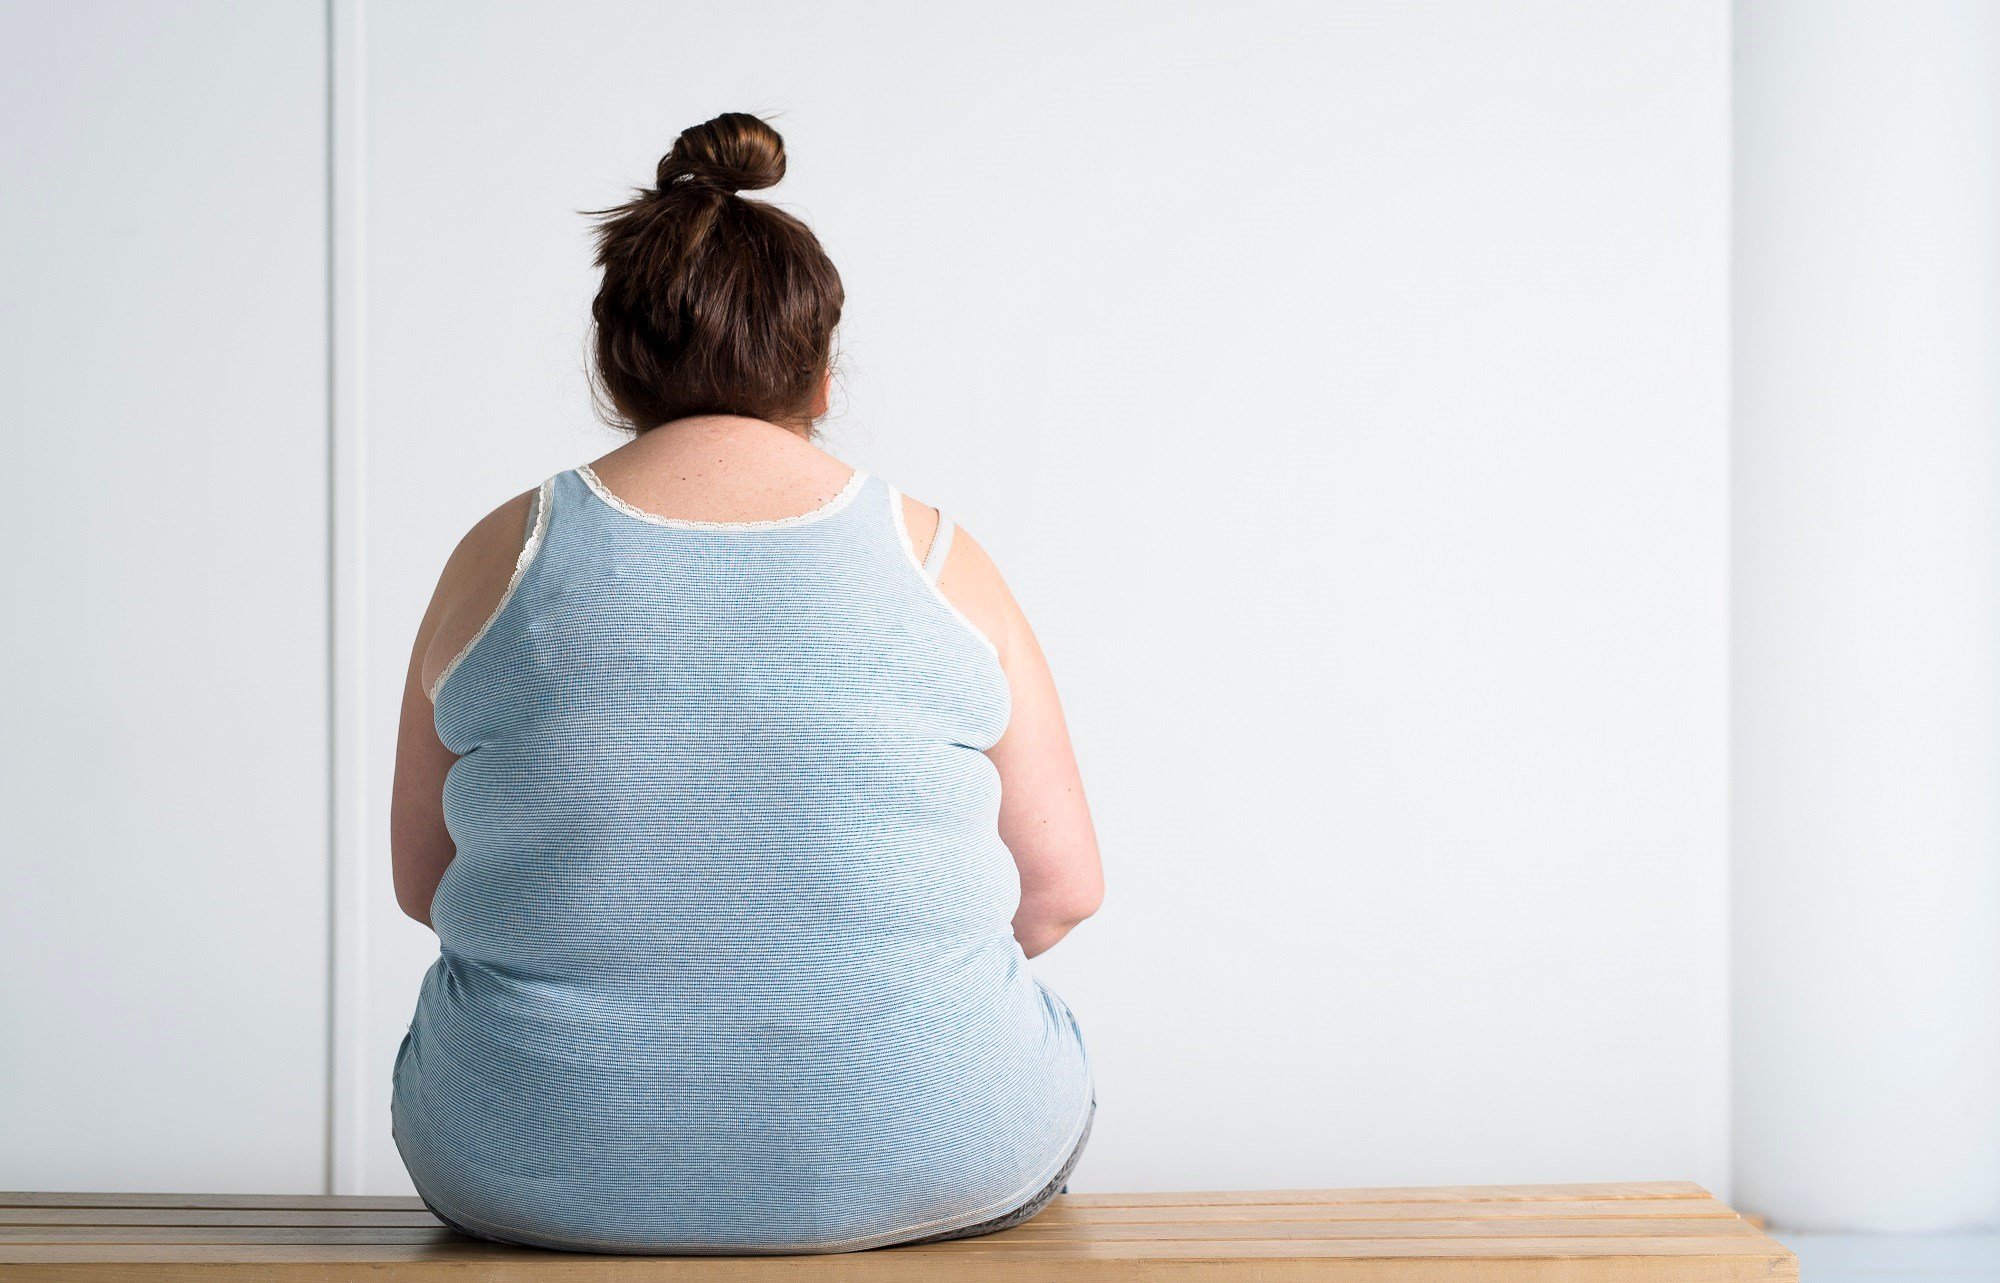 Girls with obesity were less likely to achieve a bachelor's degree, make more than $50,000 per year, or enter marriage/partnership in young adulthood compared with girls without obesity.